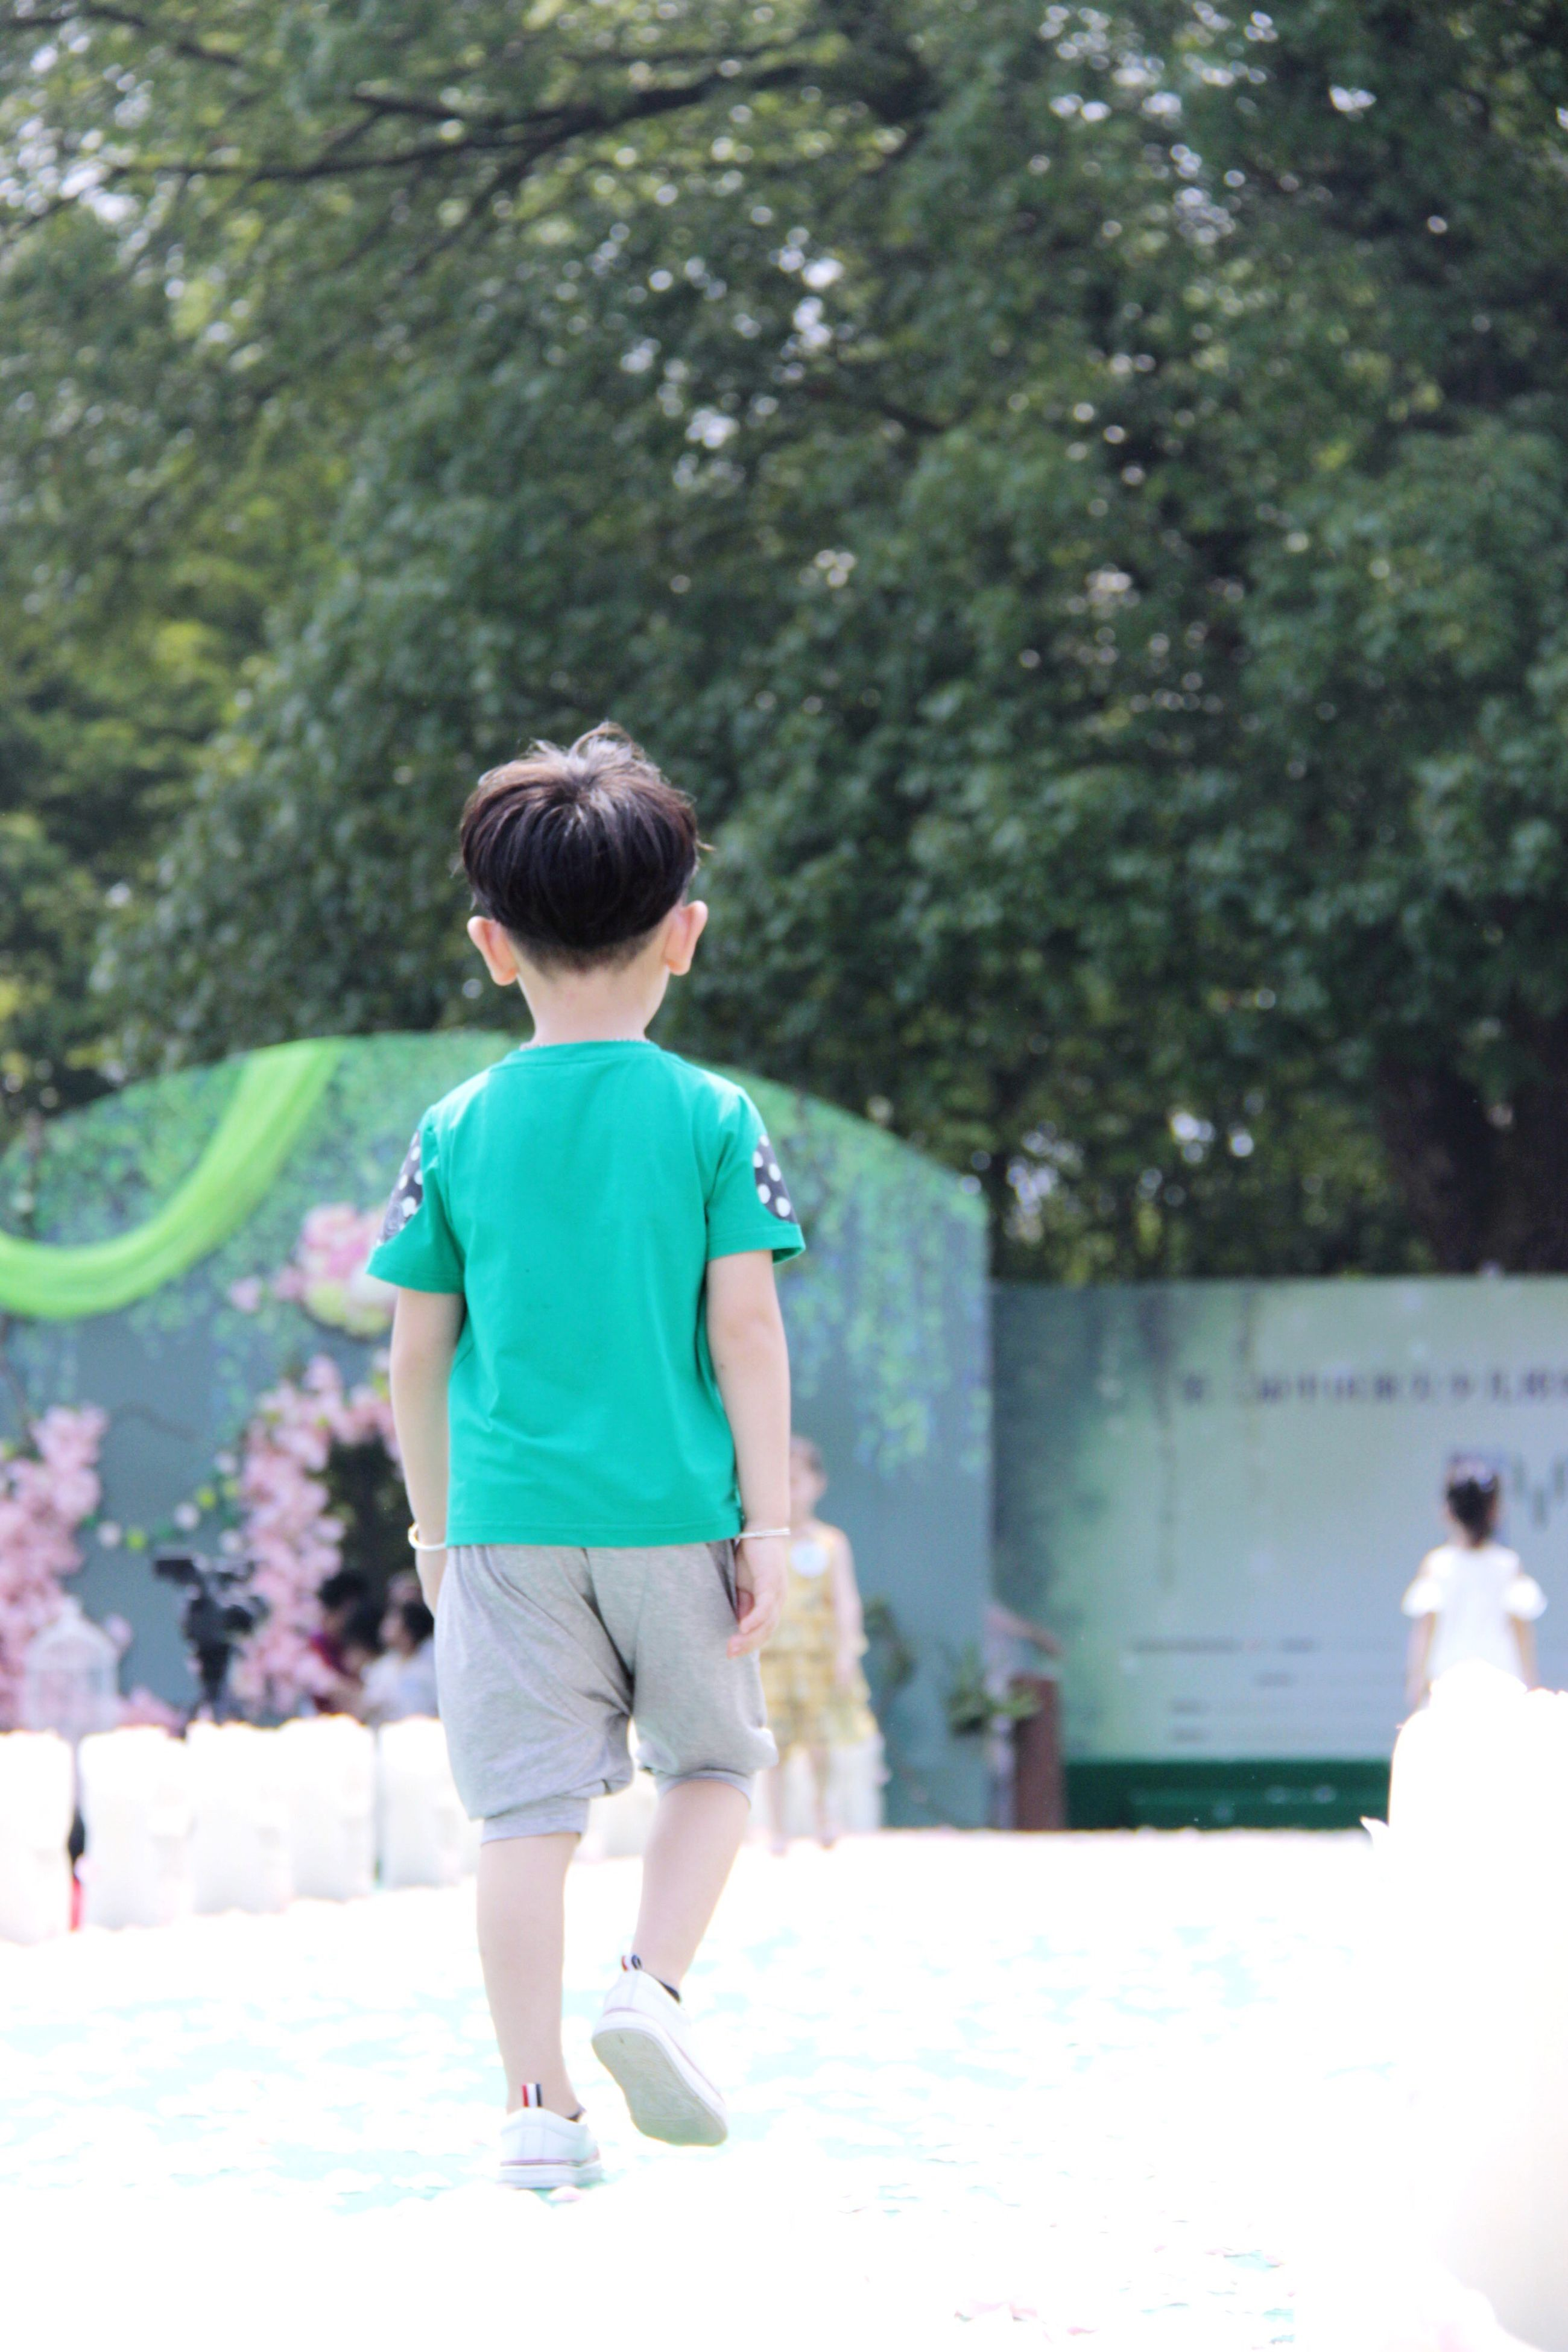 full length, rear view, childhood, lifestyles, leisure activity, casual clothing, boys, girls, elementary age, tree, walking, innocence, focus on foreground, park - man made space, togetherness, day, person